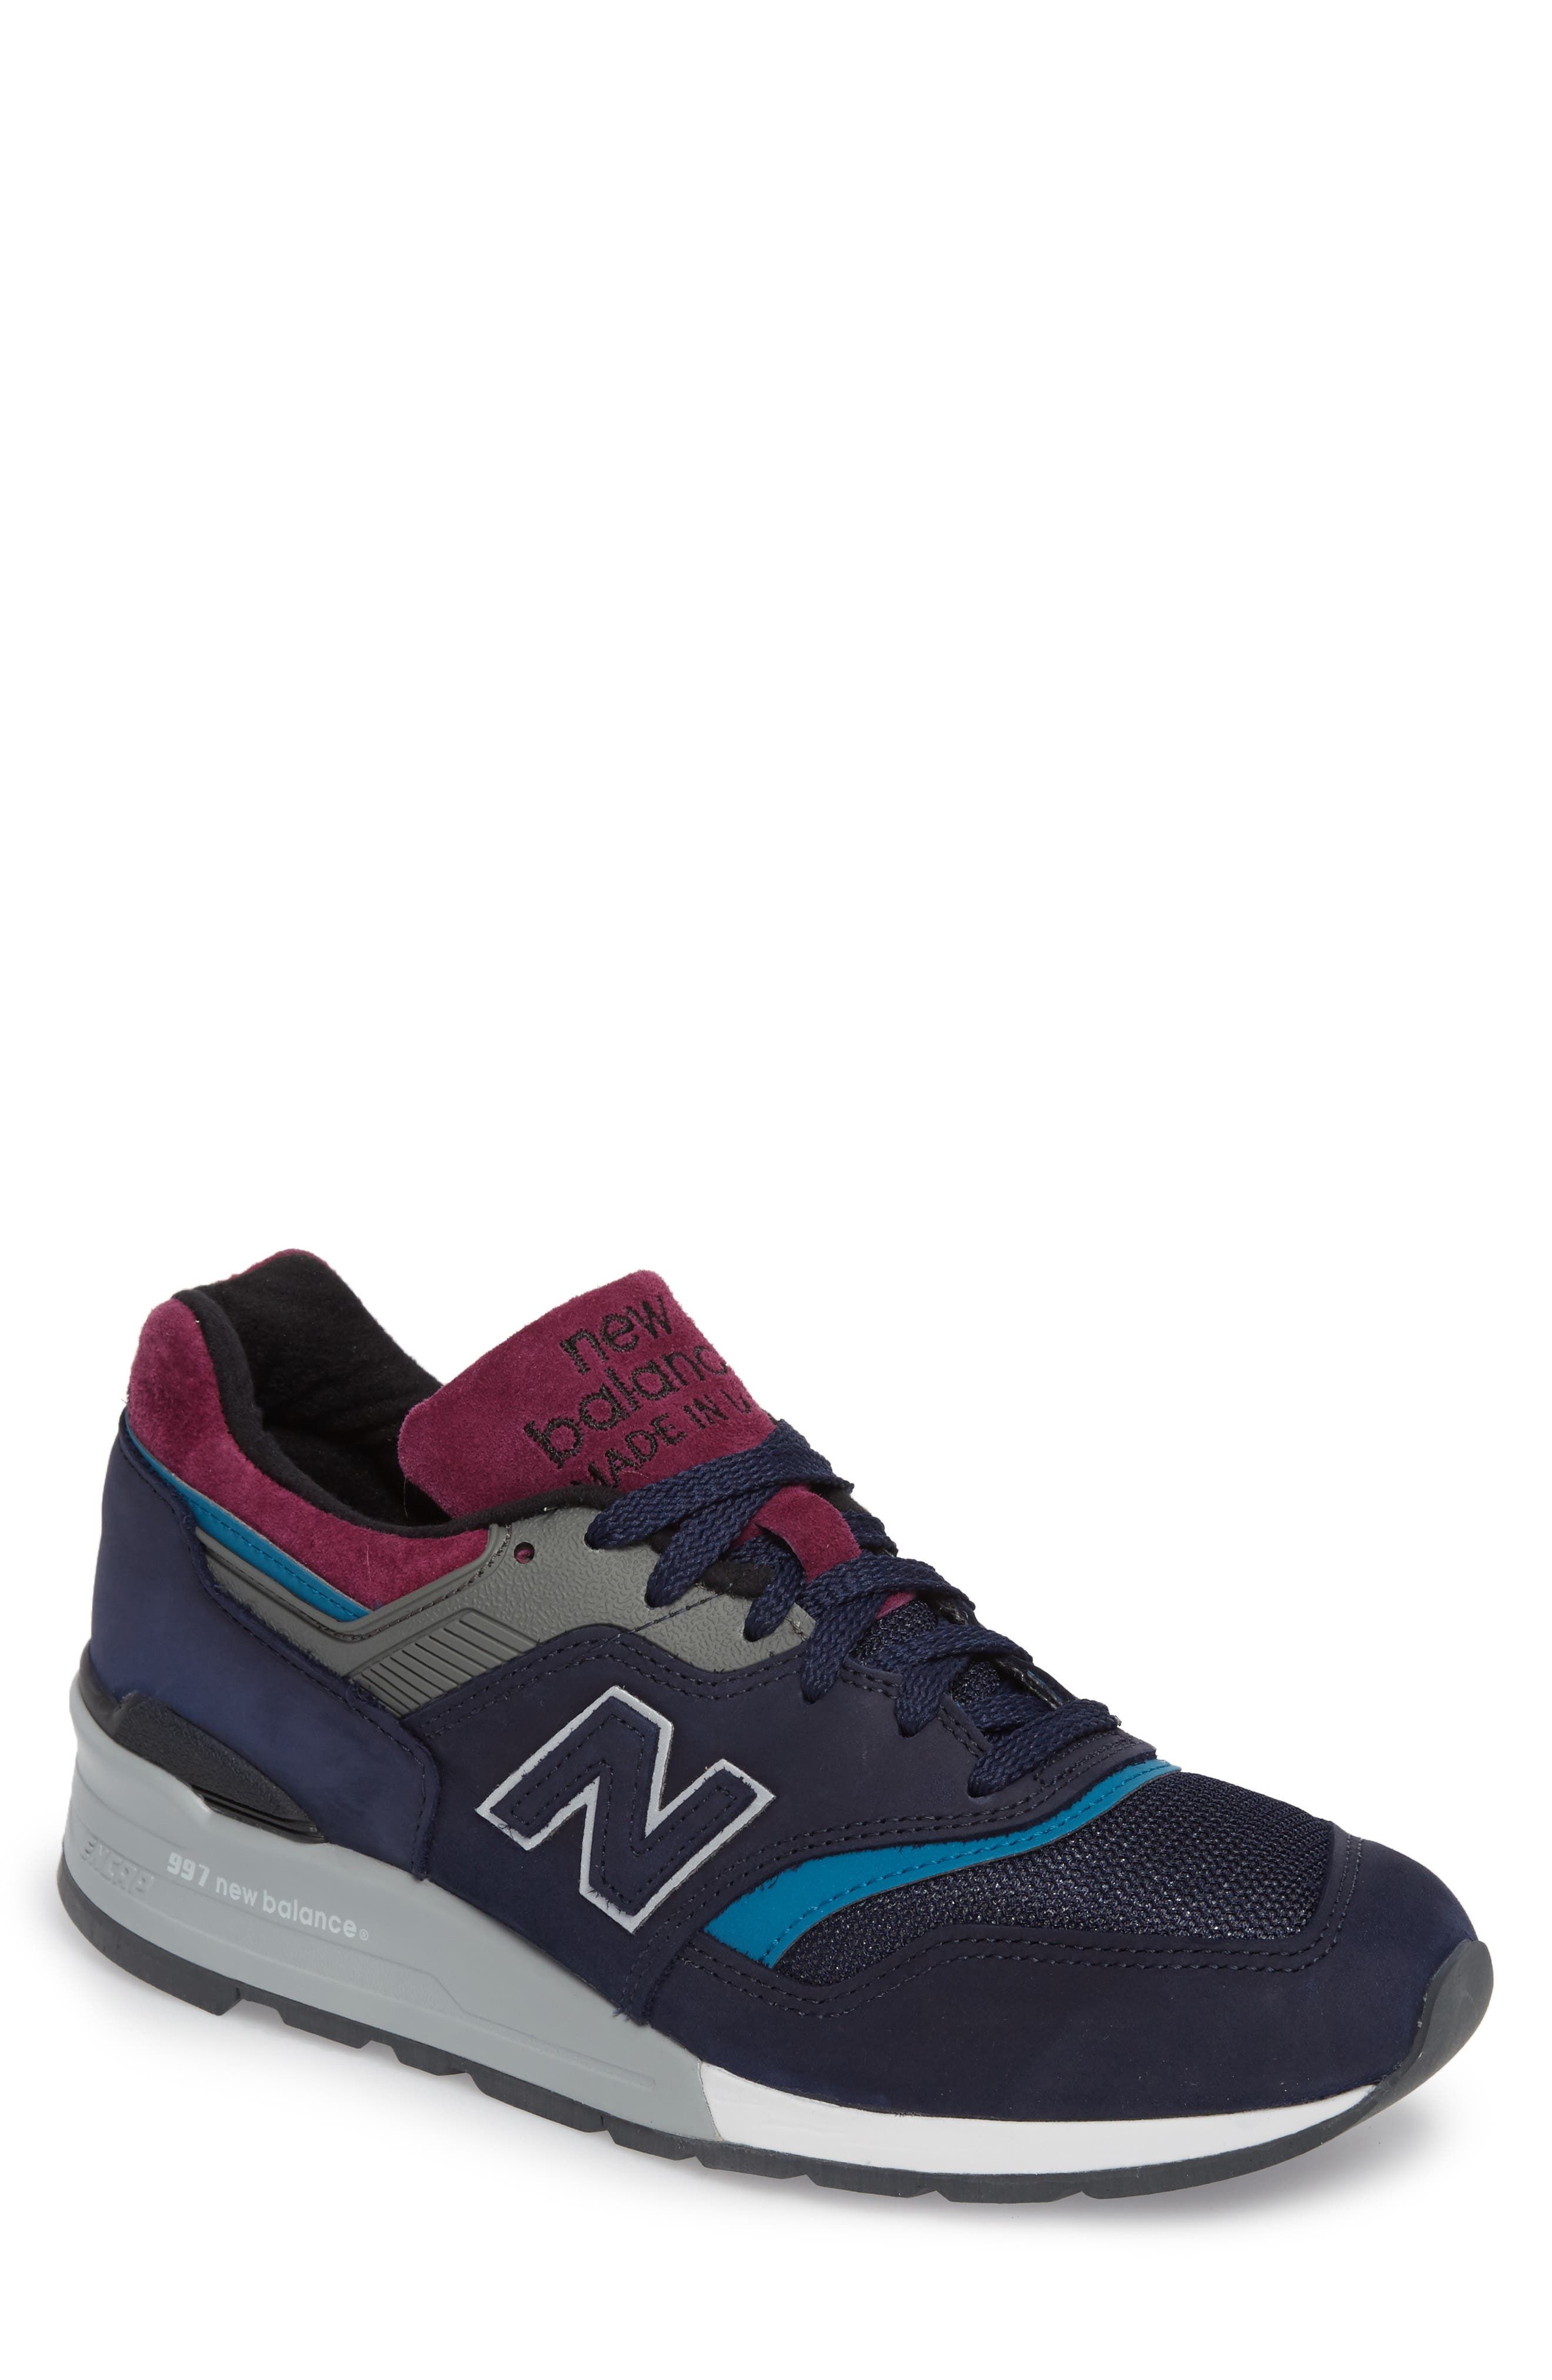 997 Sneaker,                         Main,                         color, Navy